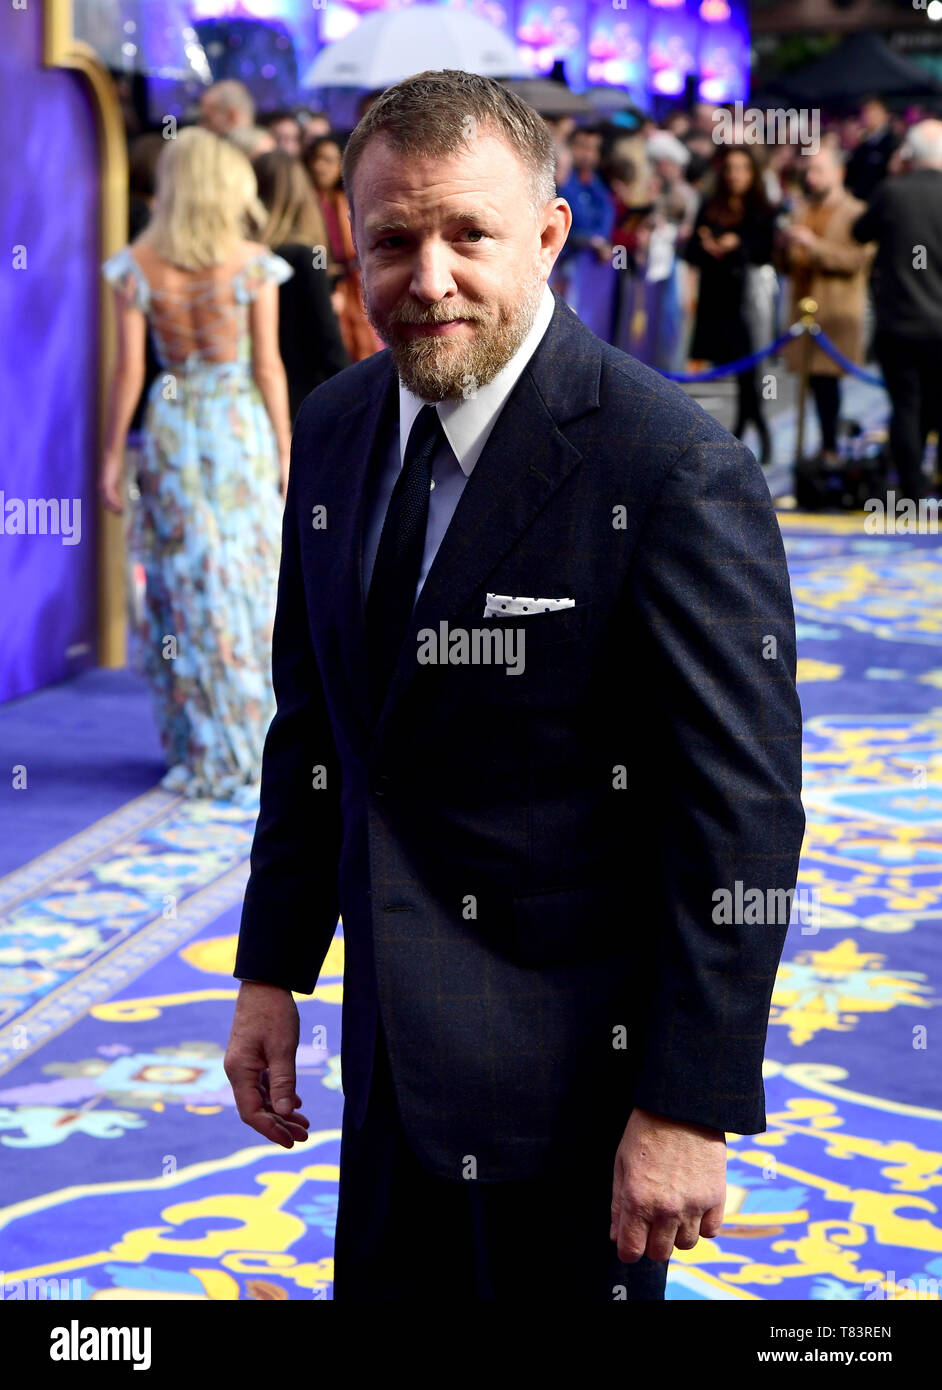 Guy Ritchie attending the Aladdin European Premiere held at the Odeon Luxe Leicester Square, London. - Stock Image